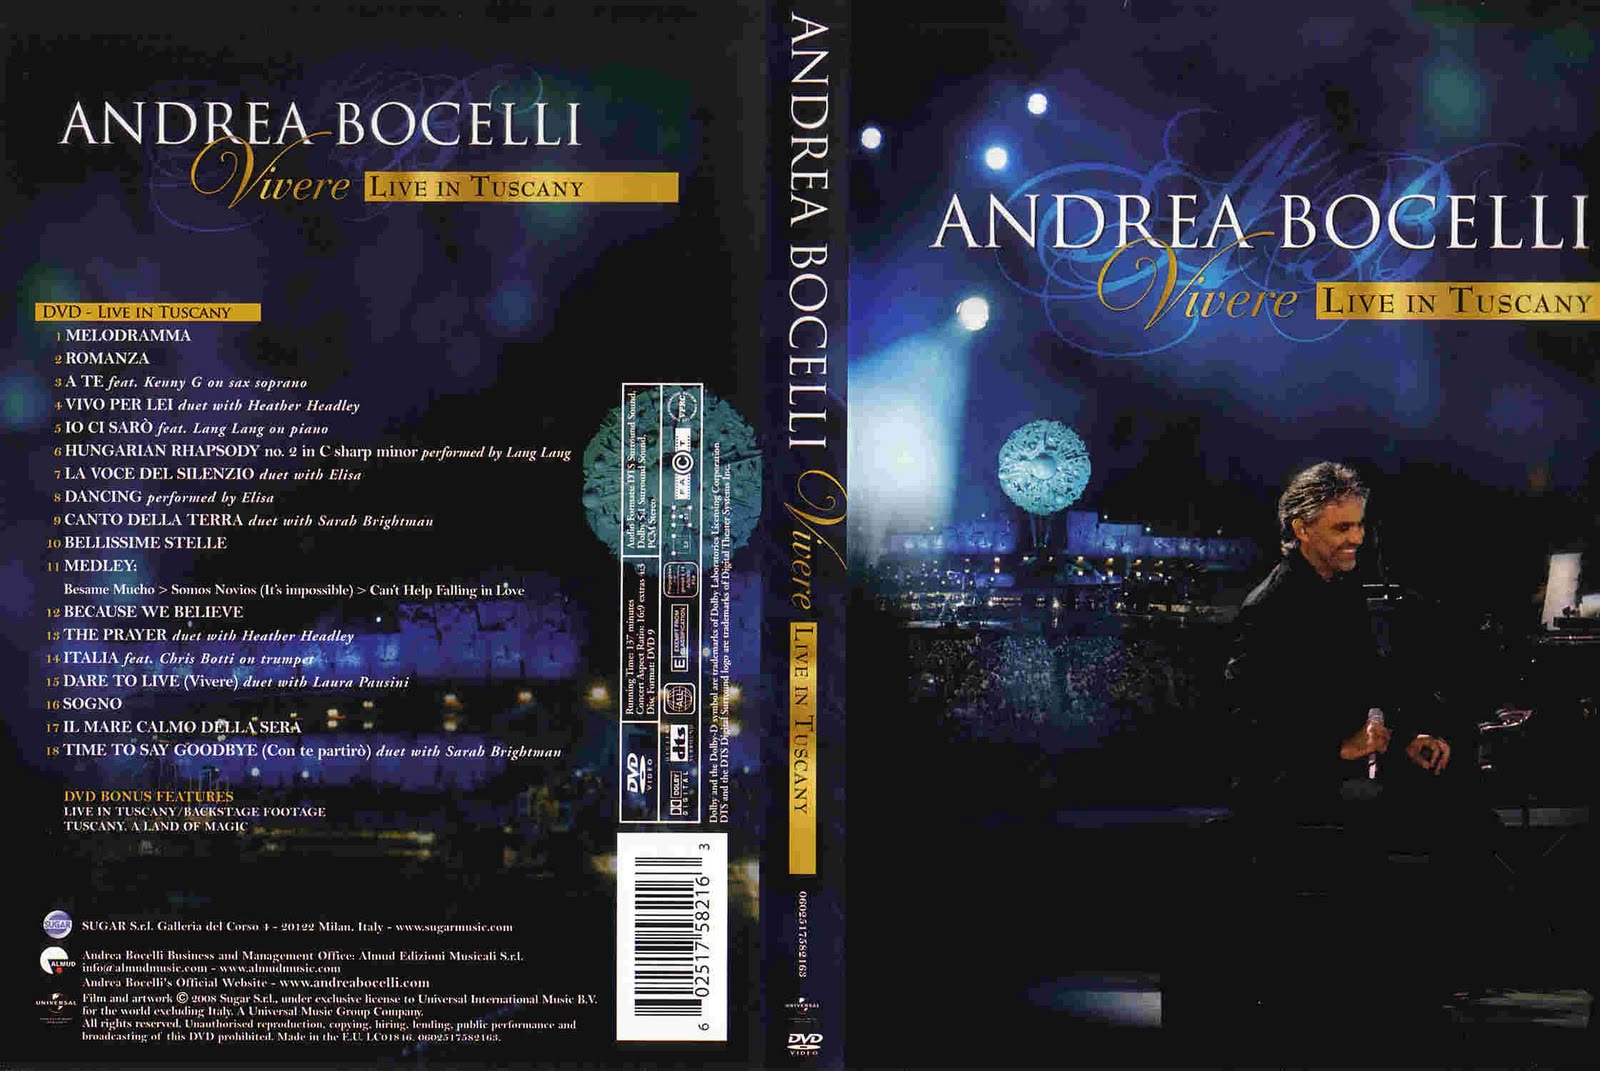 http://1.bp.blogspot.com/_se0zHB8H7oU/S_MABFZn0AI/AAAAAAAACao/tym-eP2YOt8/s1600/Andrea+Bocelli+-+Vivere+(Live+In+Tuscany)+-+Cover.jpg